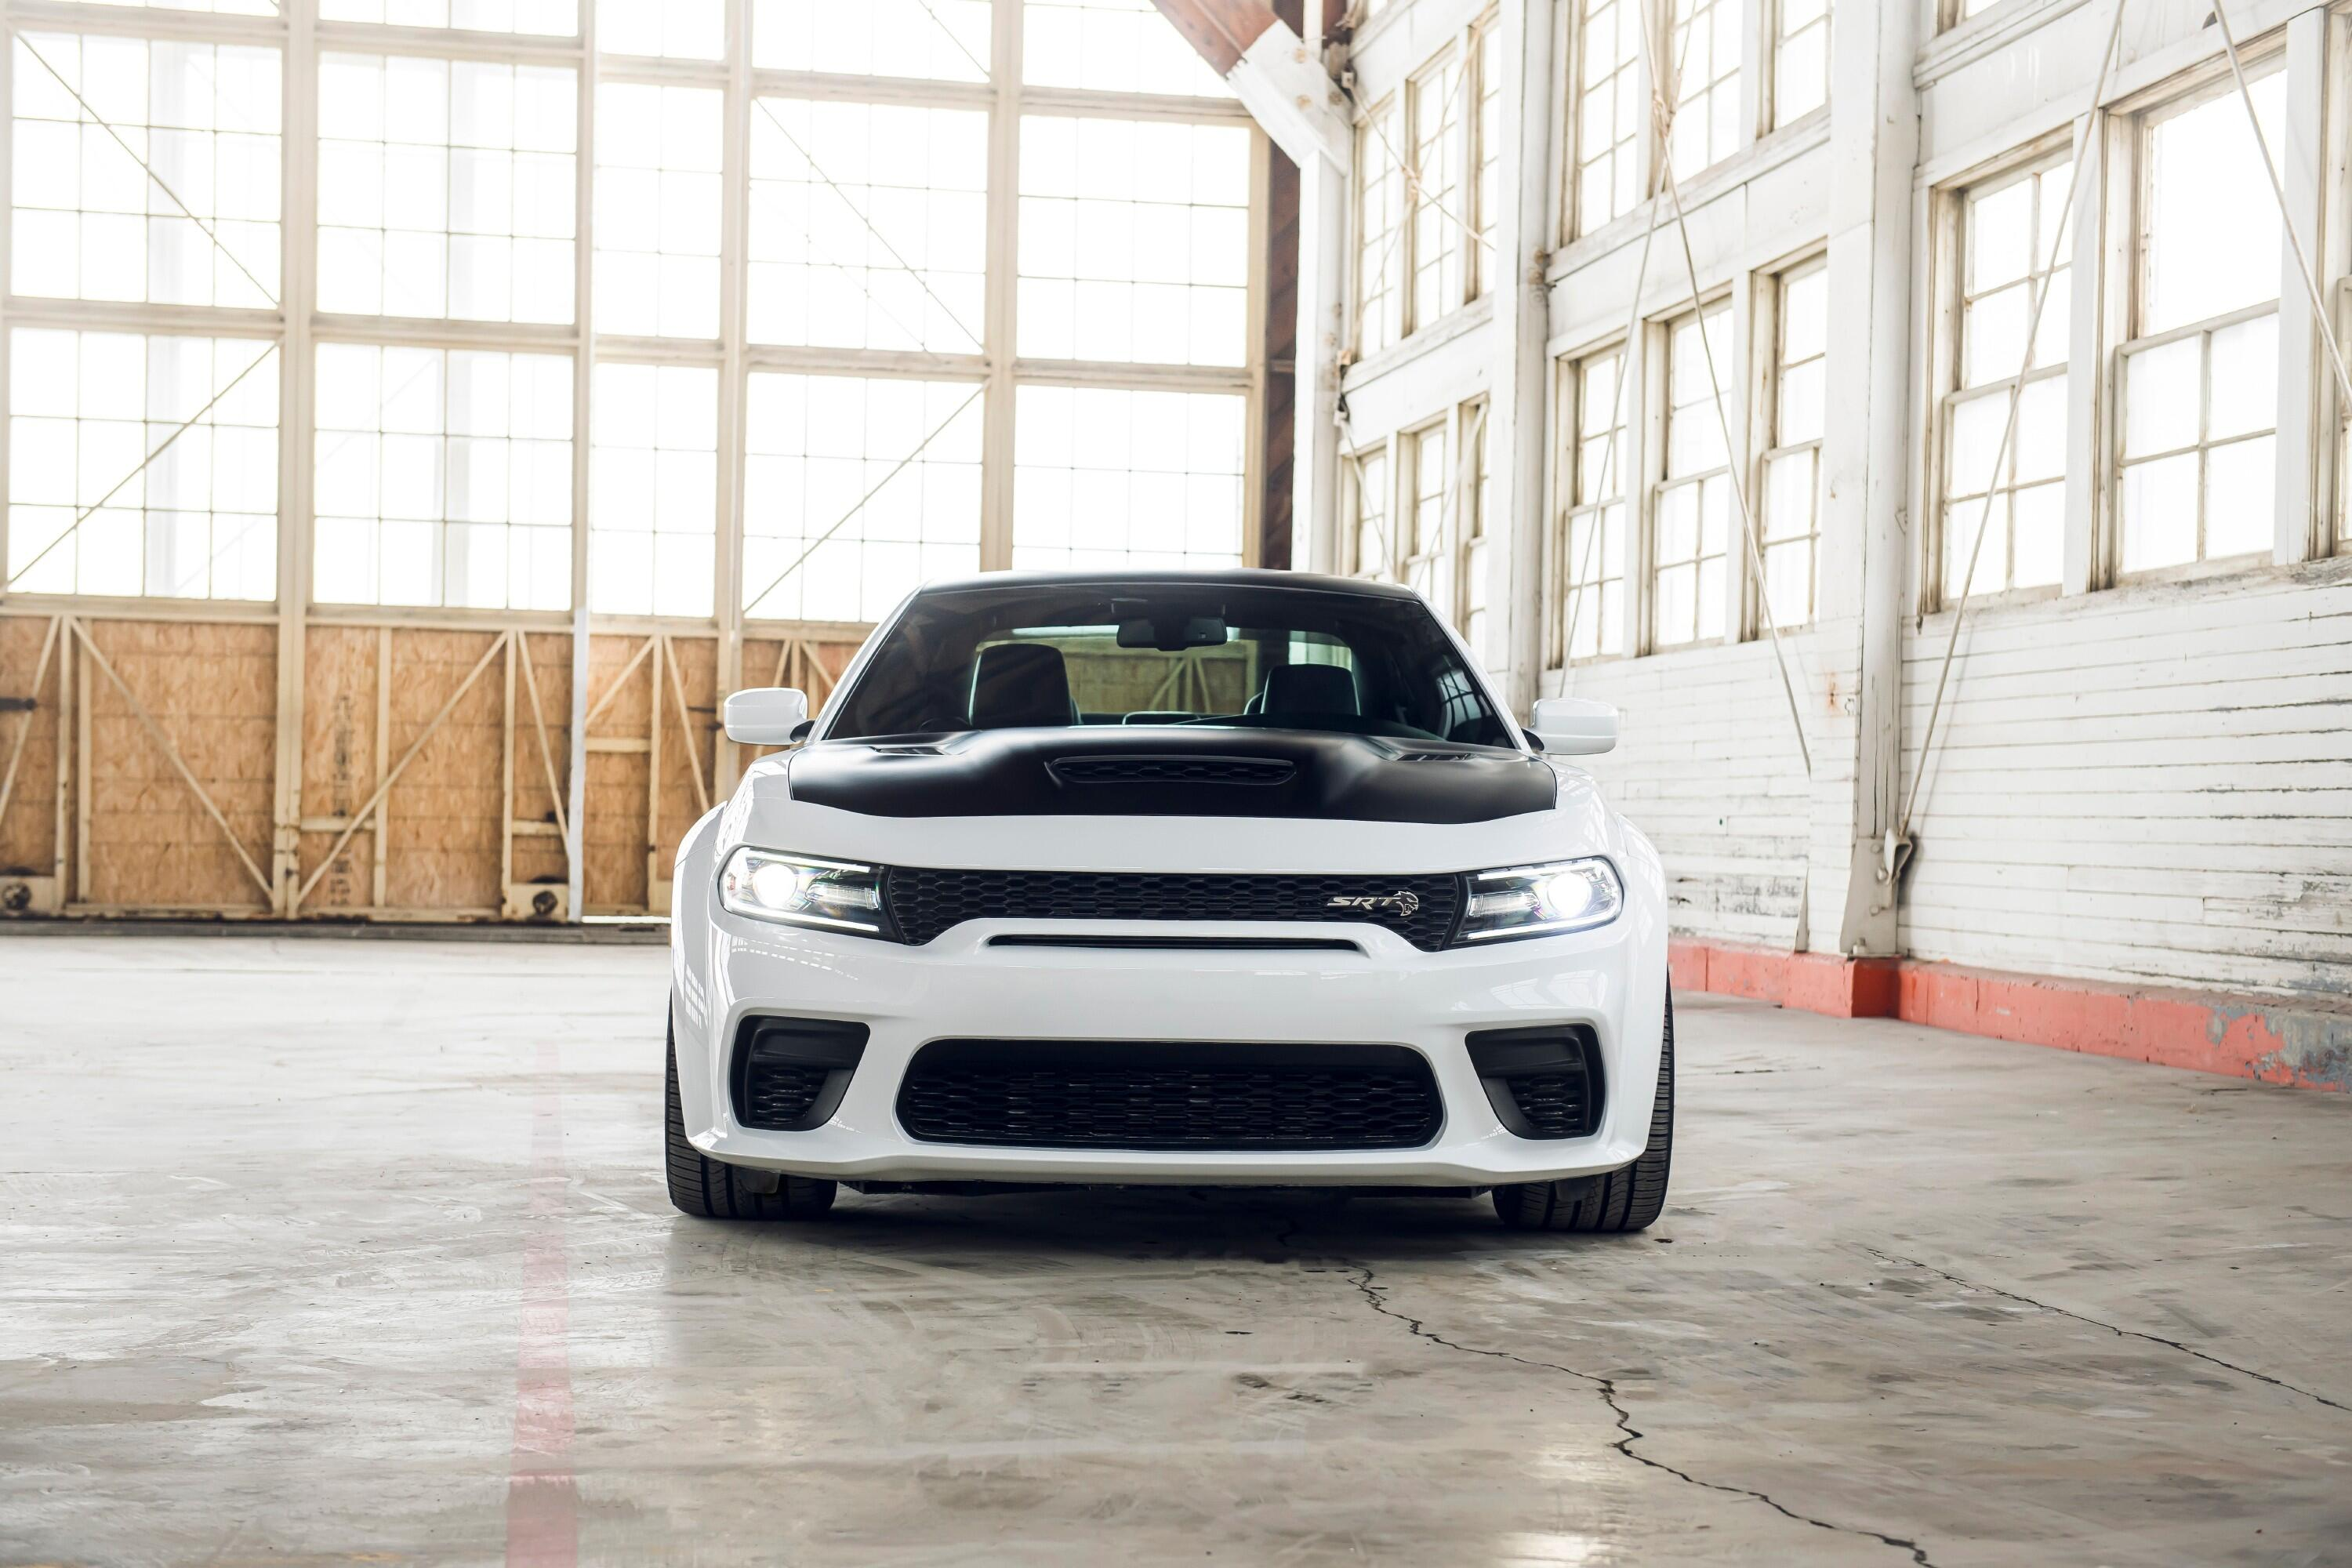 2021-dodge-charger-redeye-003